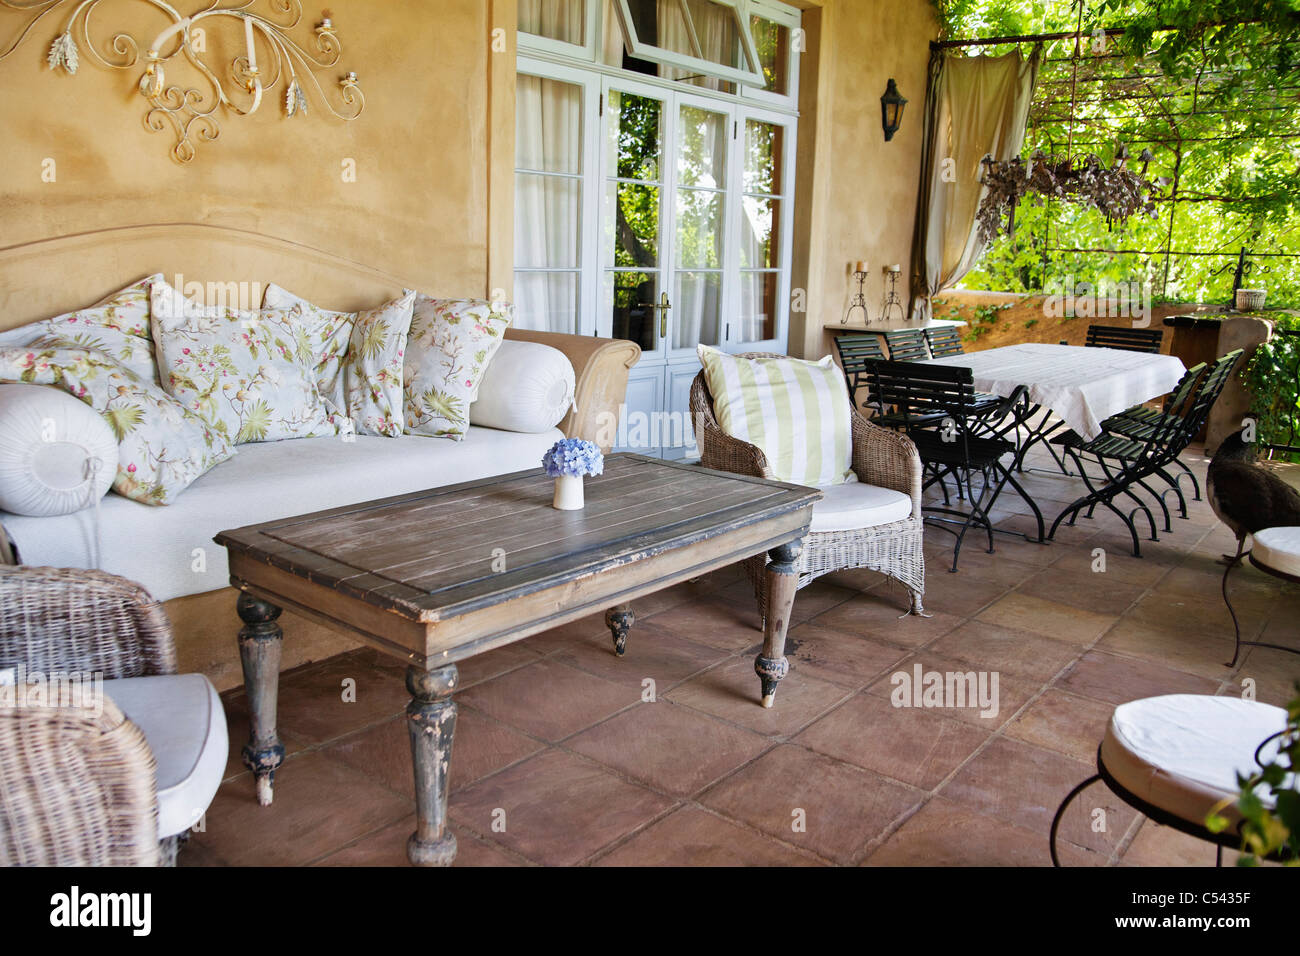 View of balcony with sitting arrangement - Stock Image